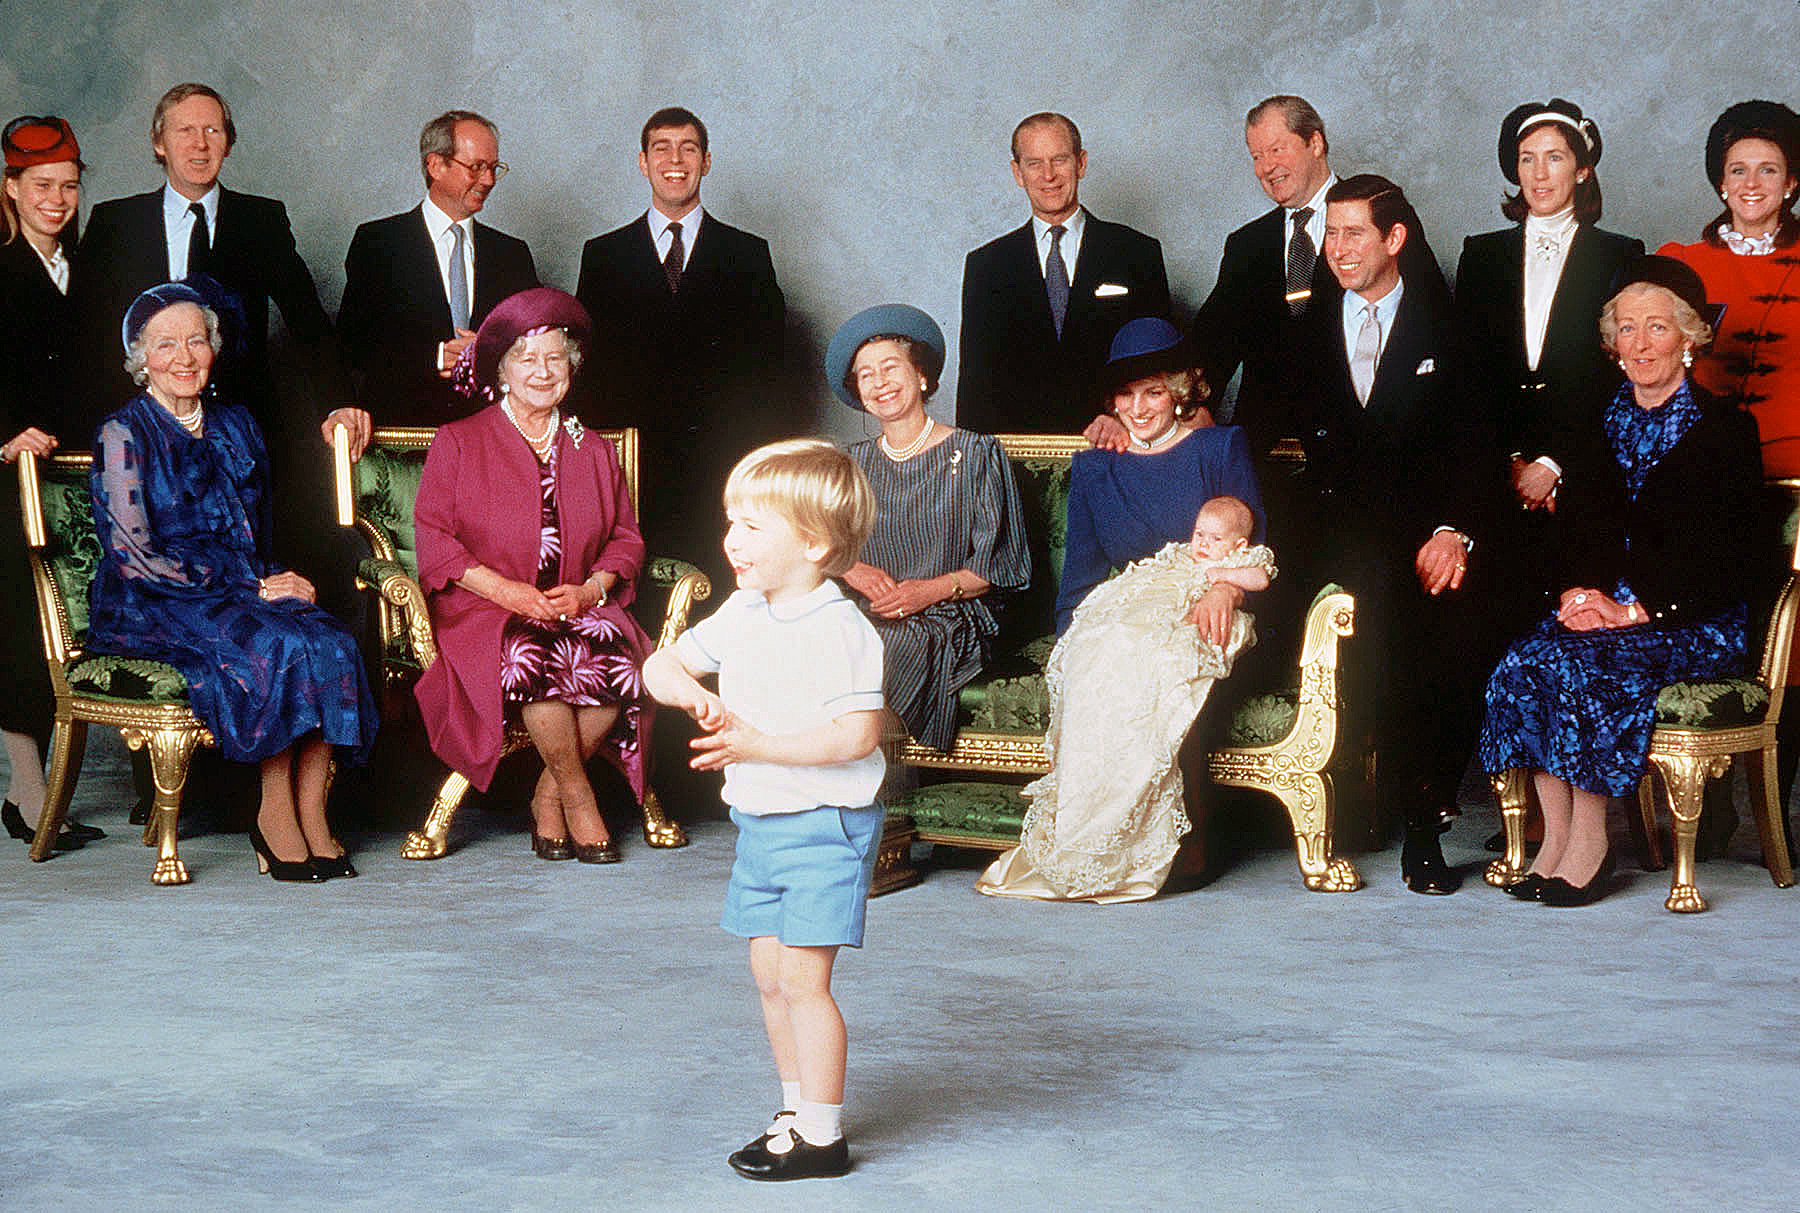 Prince Harry Christening Princess Diana Emerald Couch